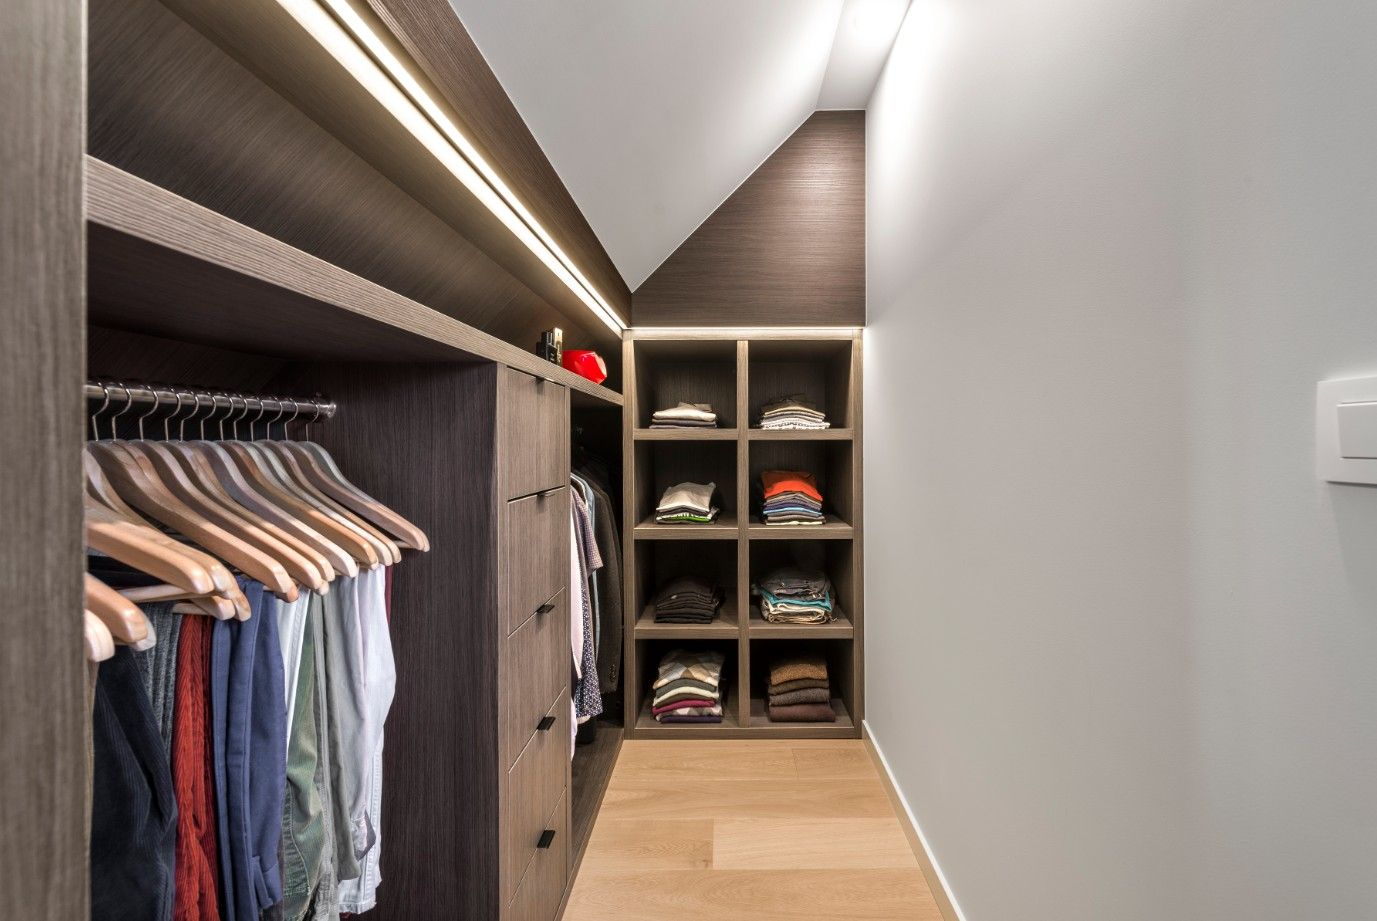 Closet Coon Part 1 Photo With 1500×1500 Px. For Your Closet Ideas